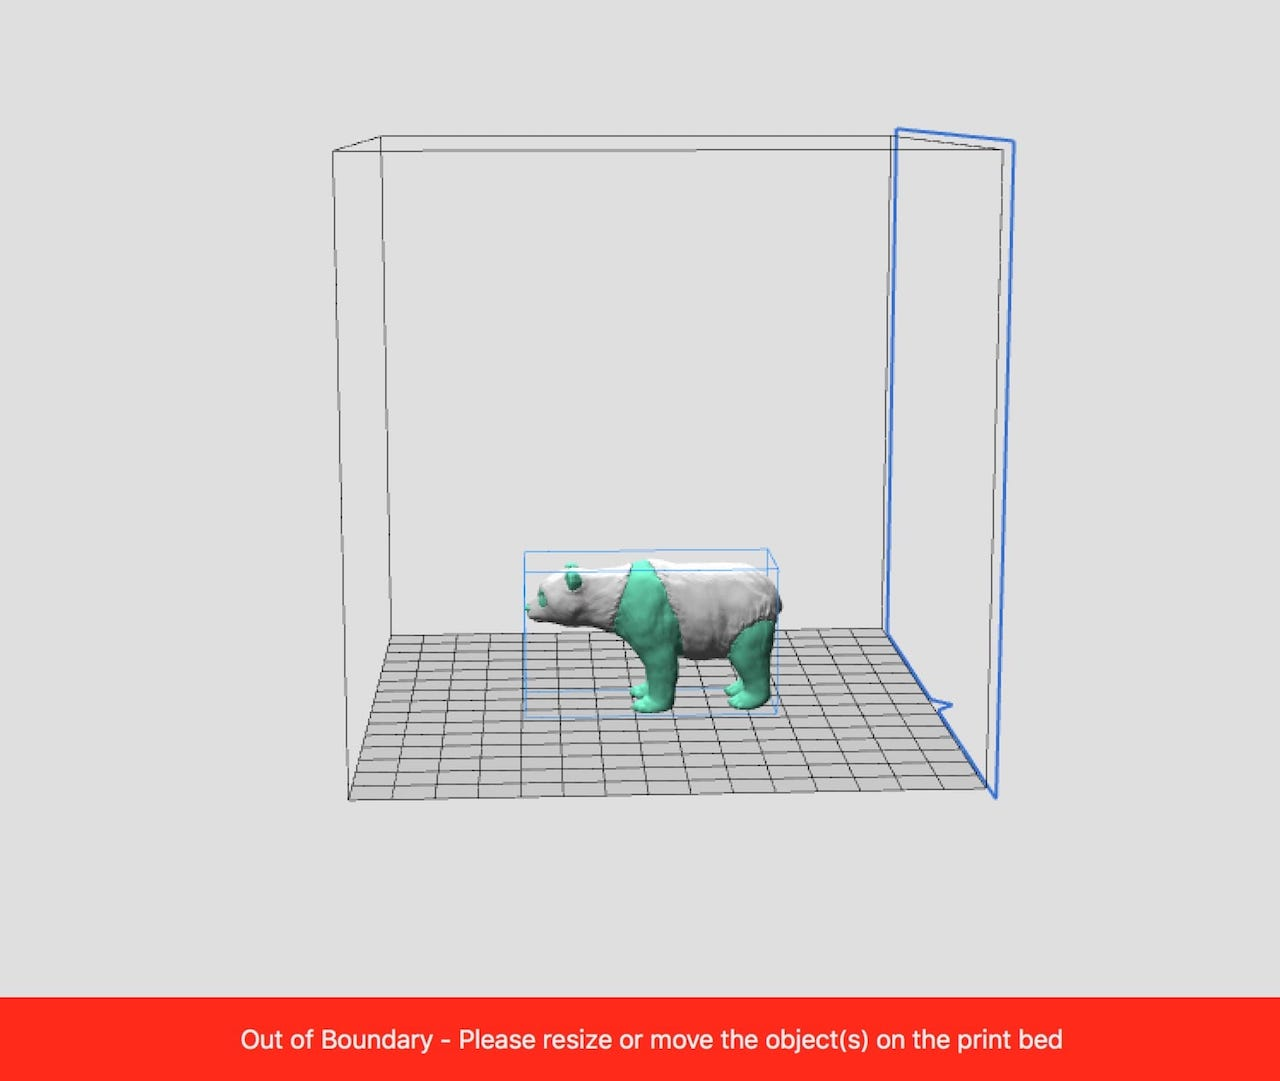 3D models were frequently detected as out of bounds, yet they did not seem to be